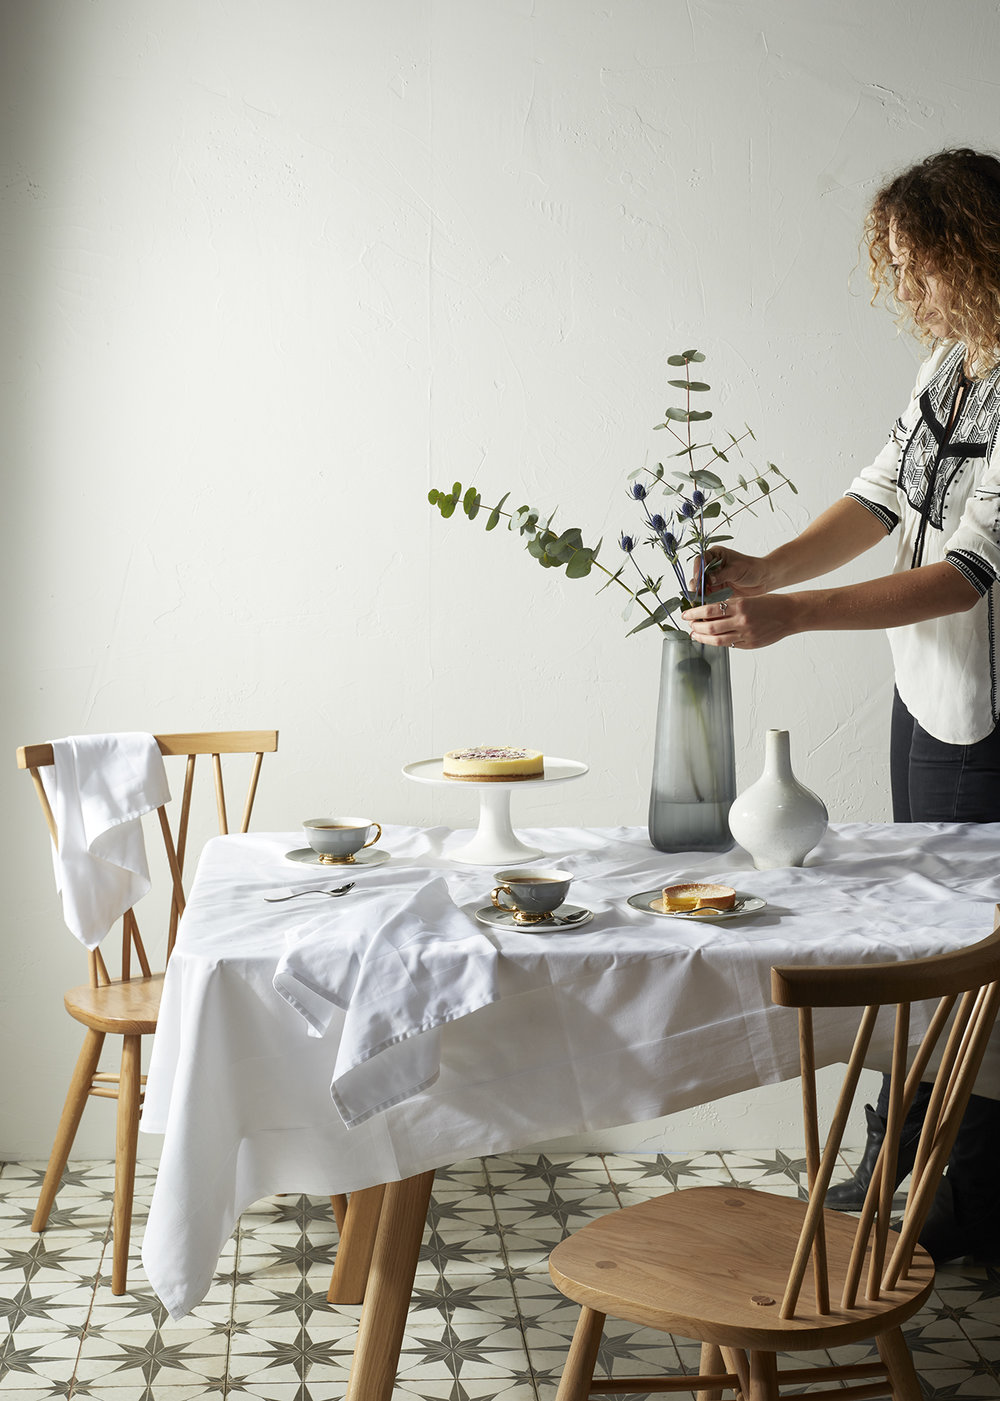 Lauren Becker - interiors & food stylist